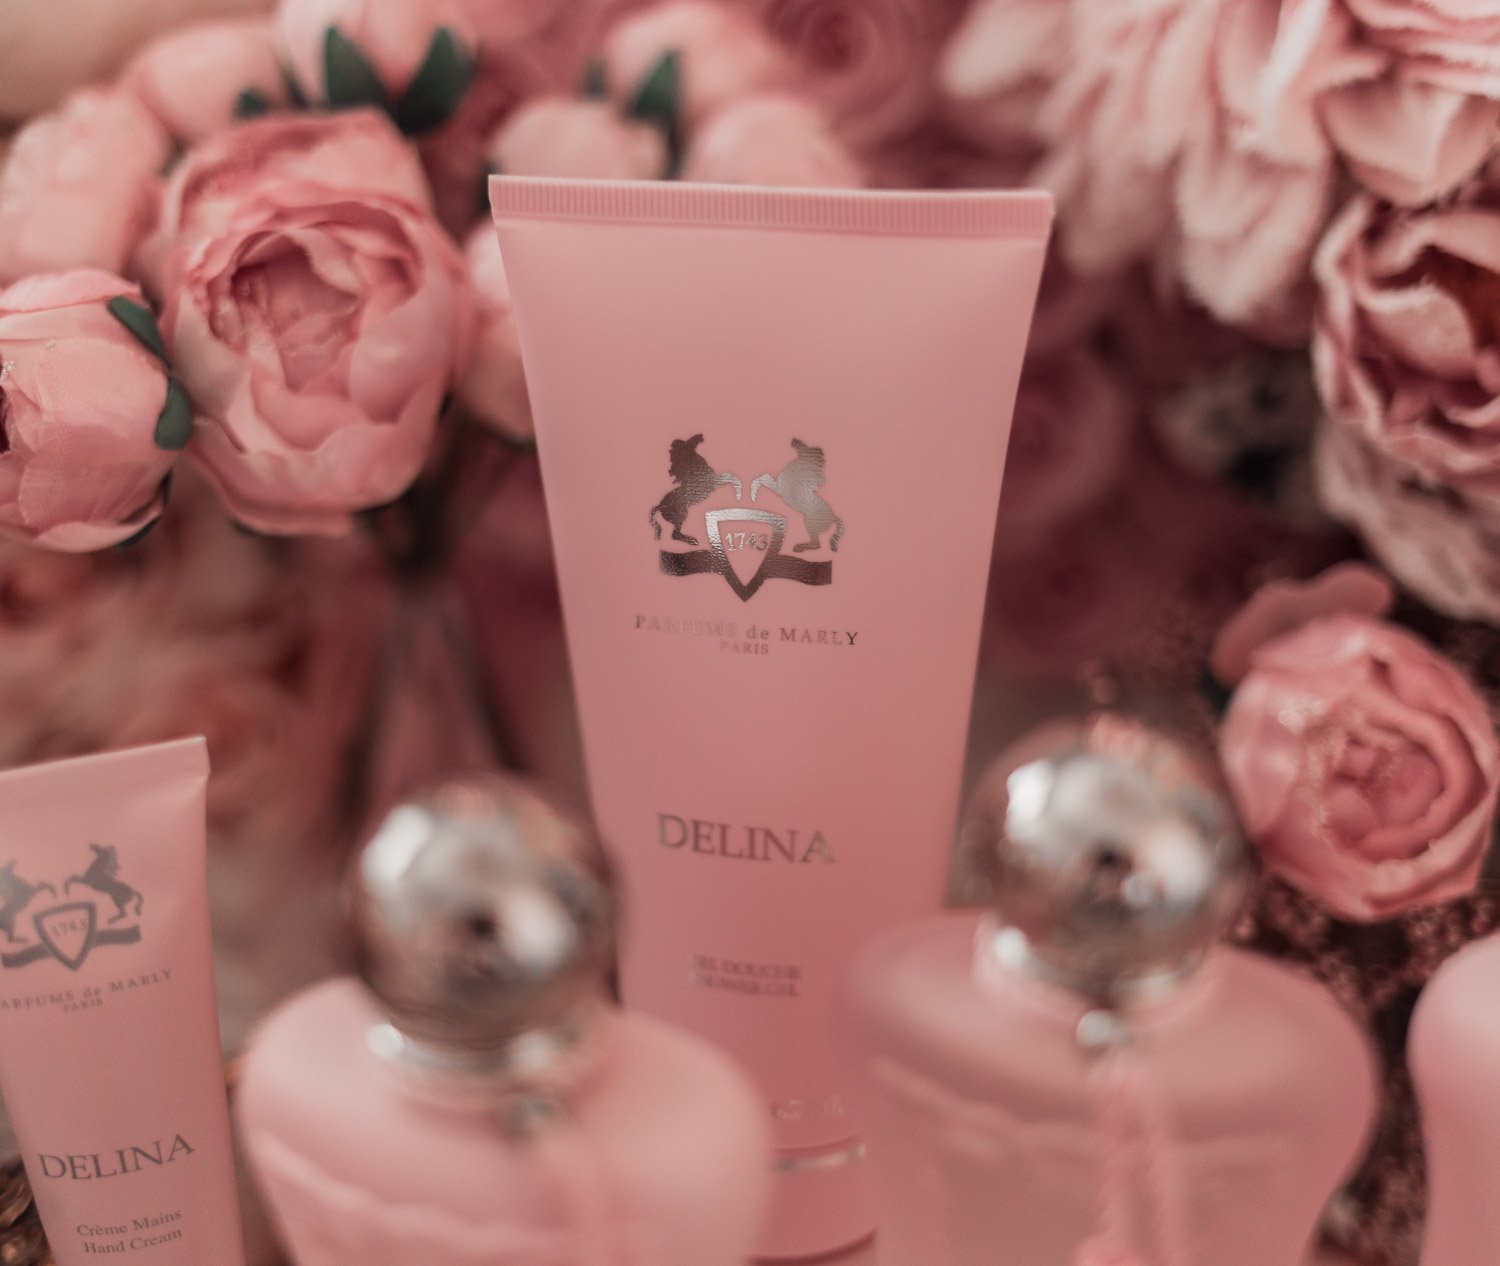 Feminine fashion blogger Elizabeth Hugen of Lizzie in Lace shares the entire Perfums de Marly Delina Collection including the Delina shower gel